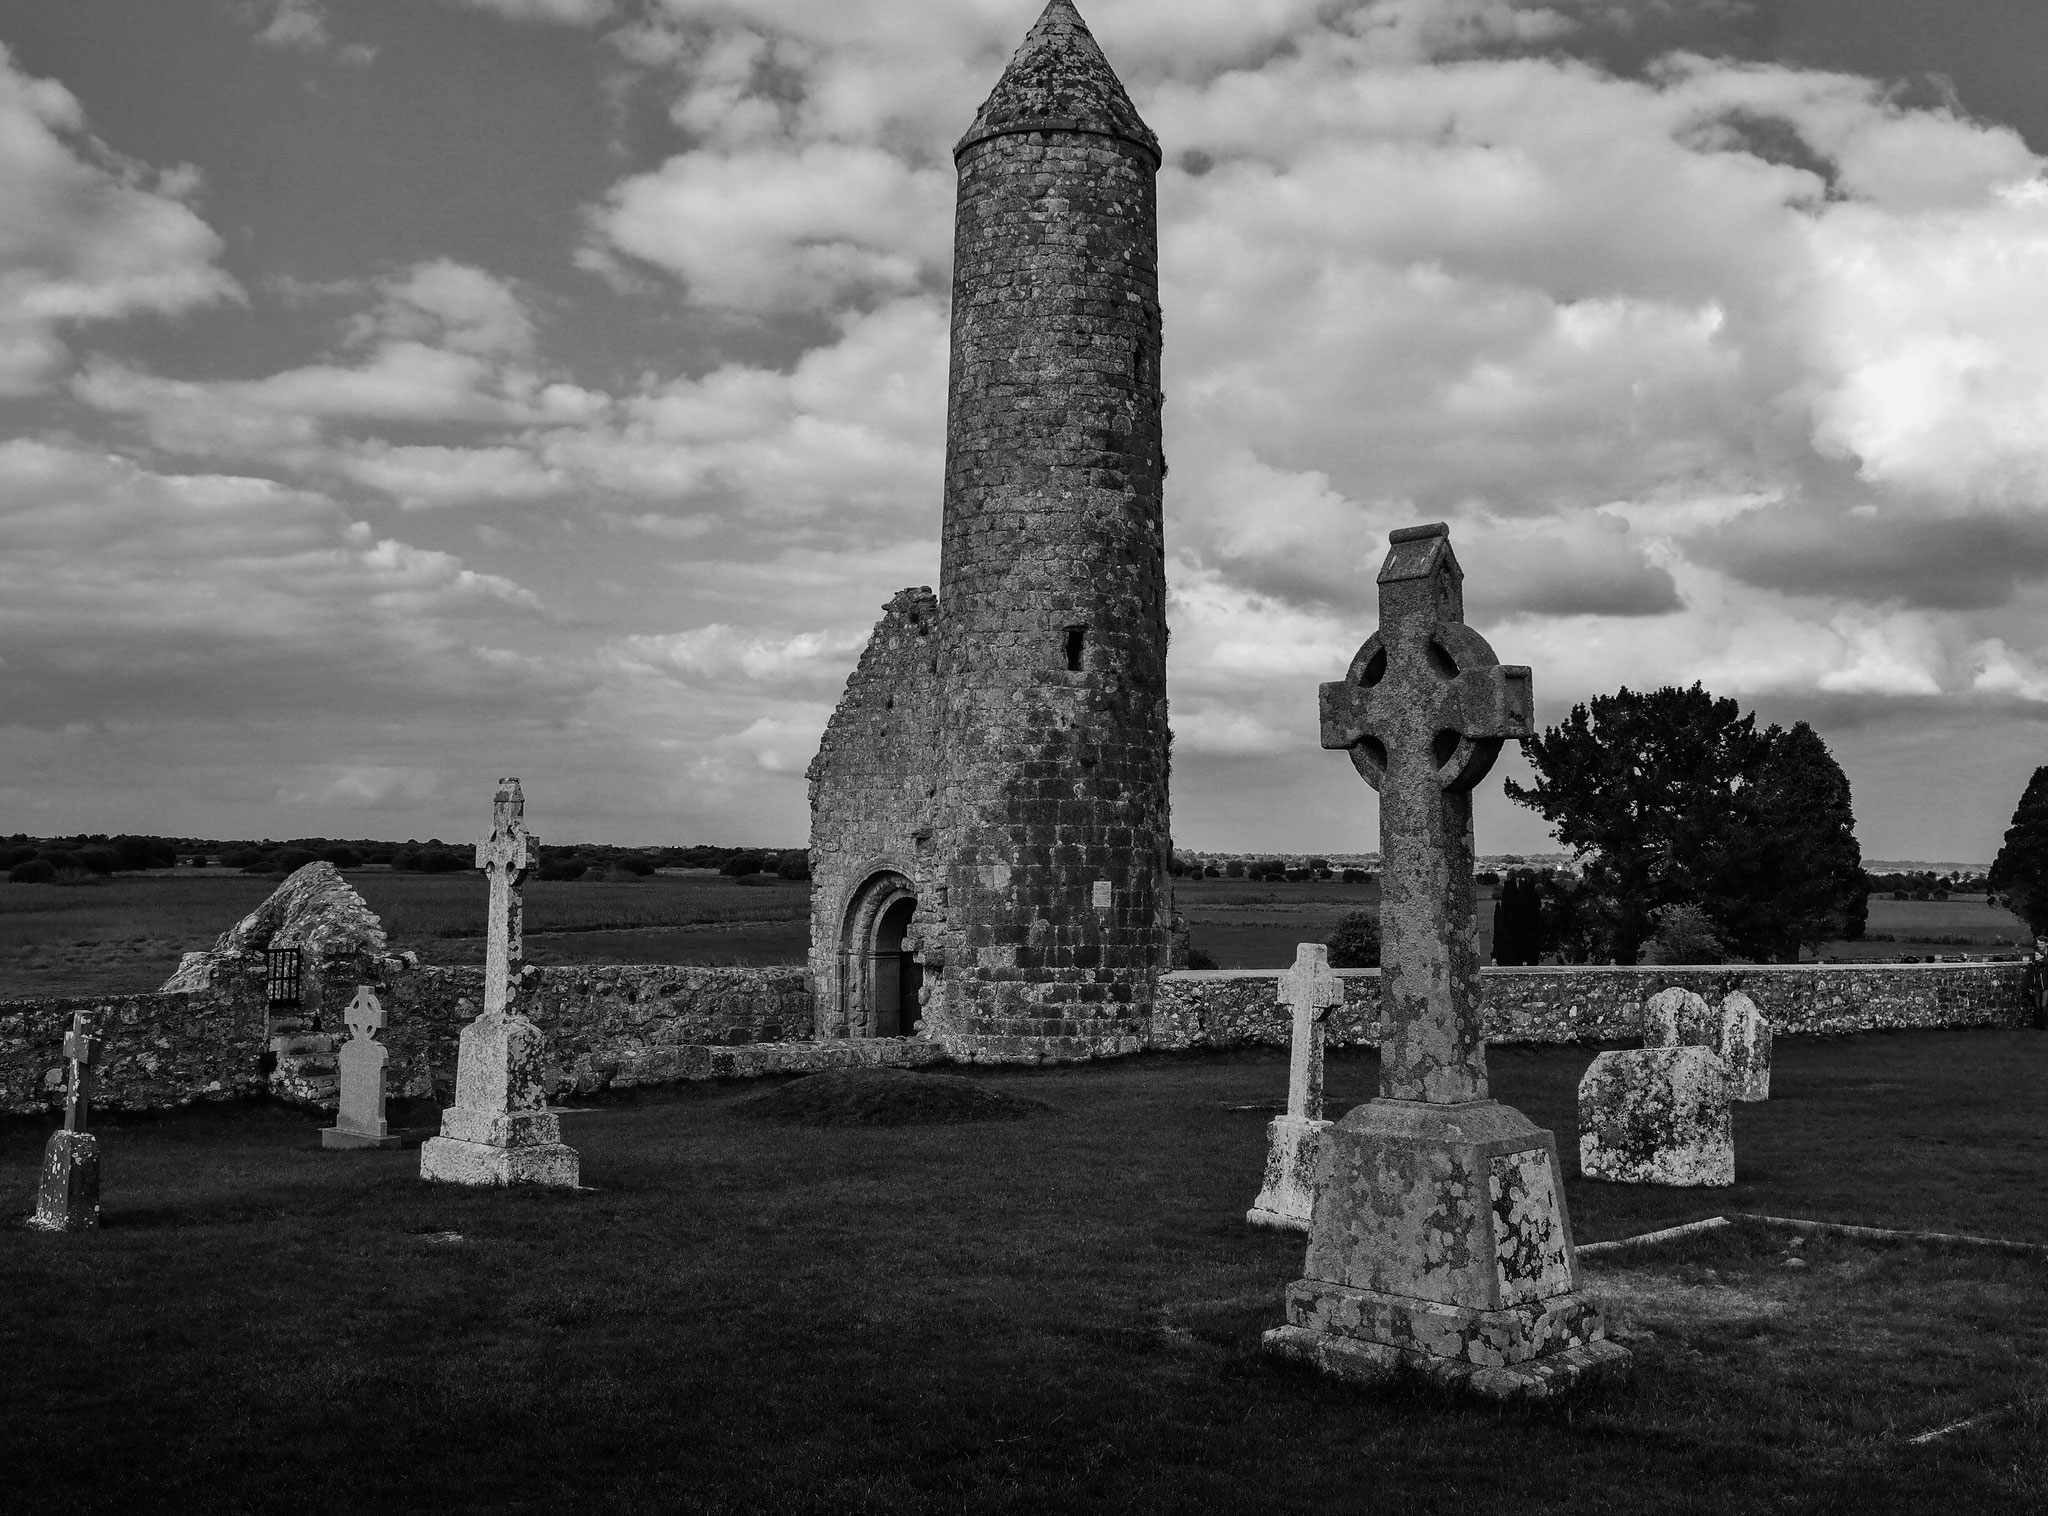 """Samhain"": black and white shot of an old tower at the edge of an anvient graveyard."